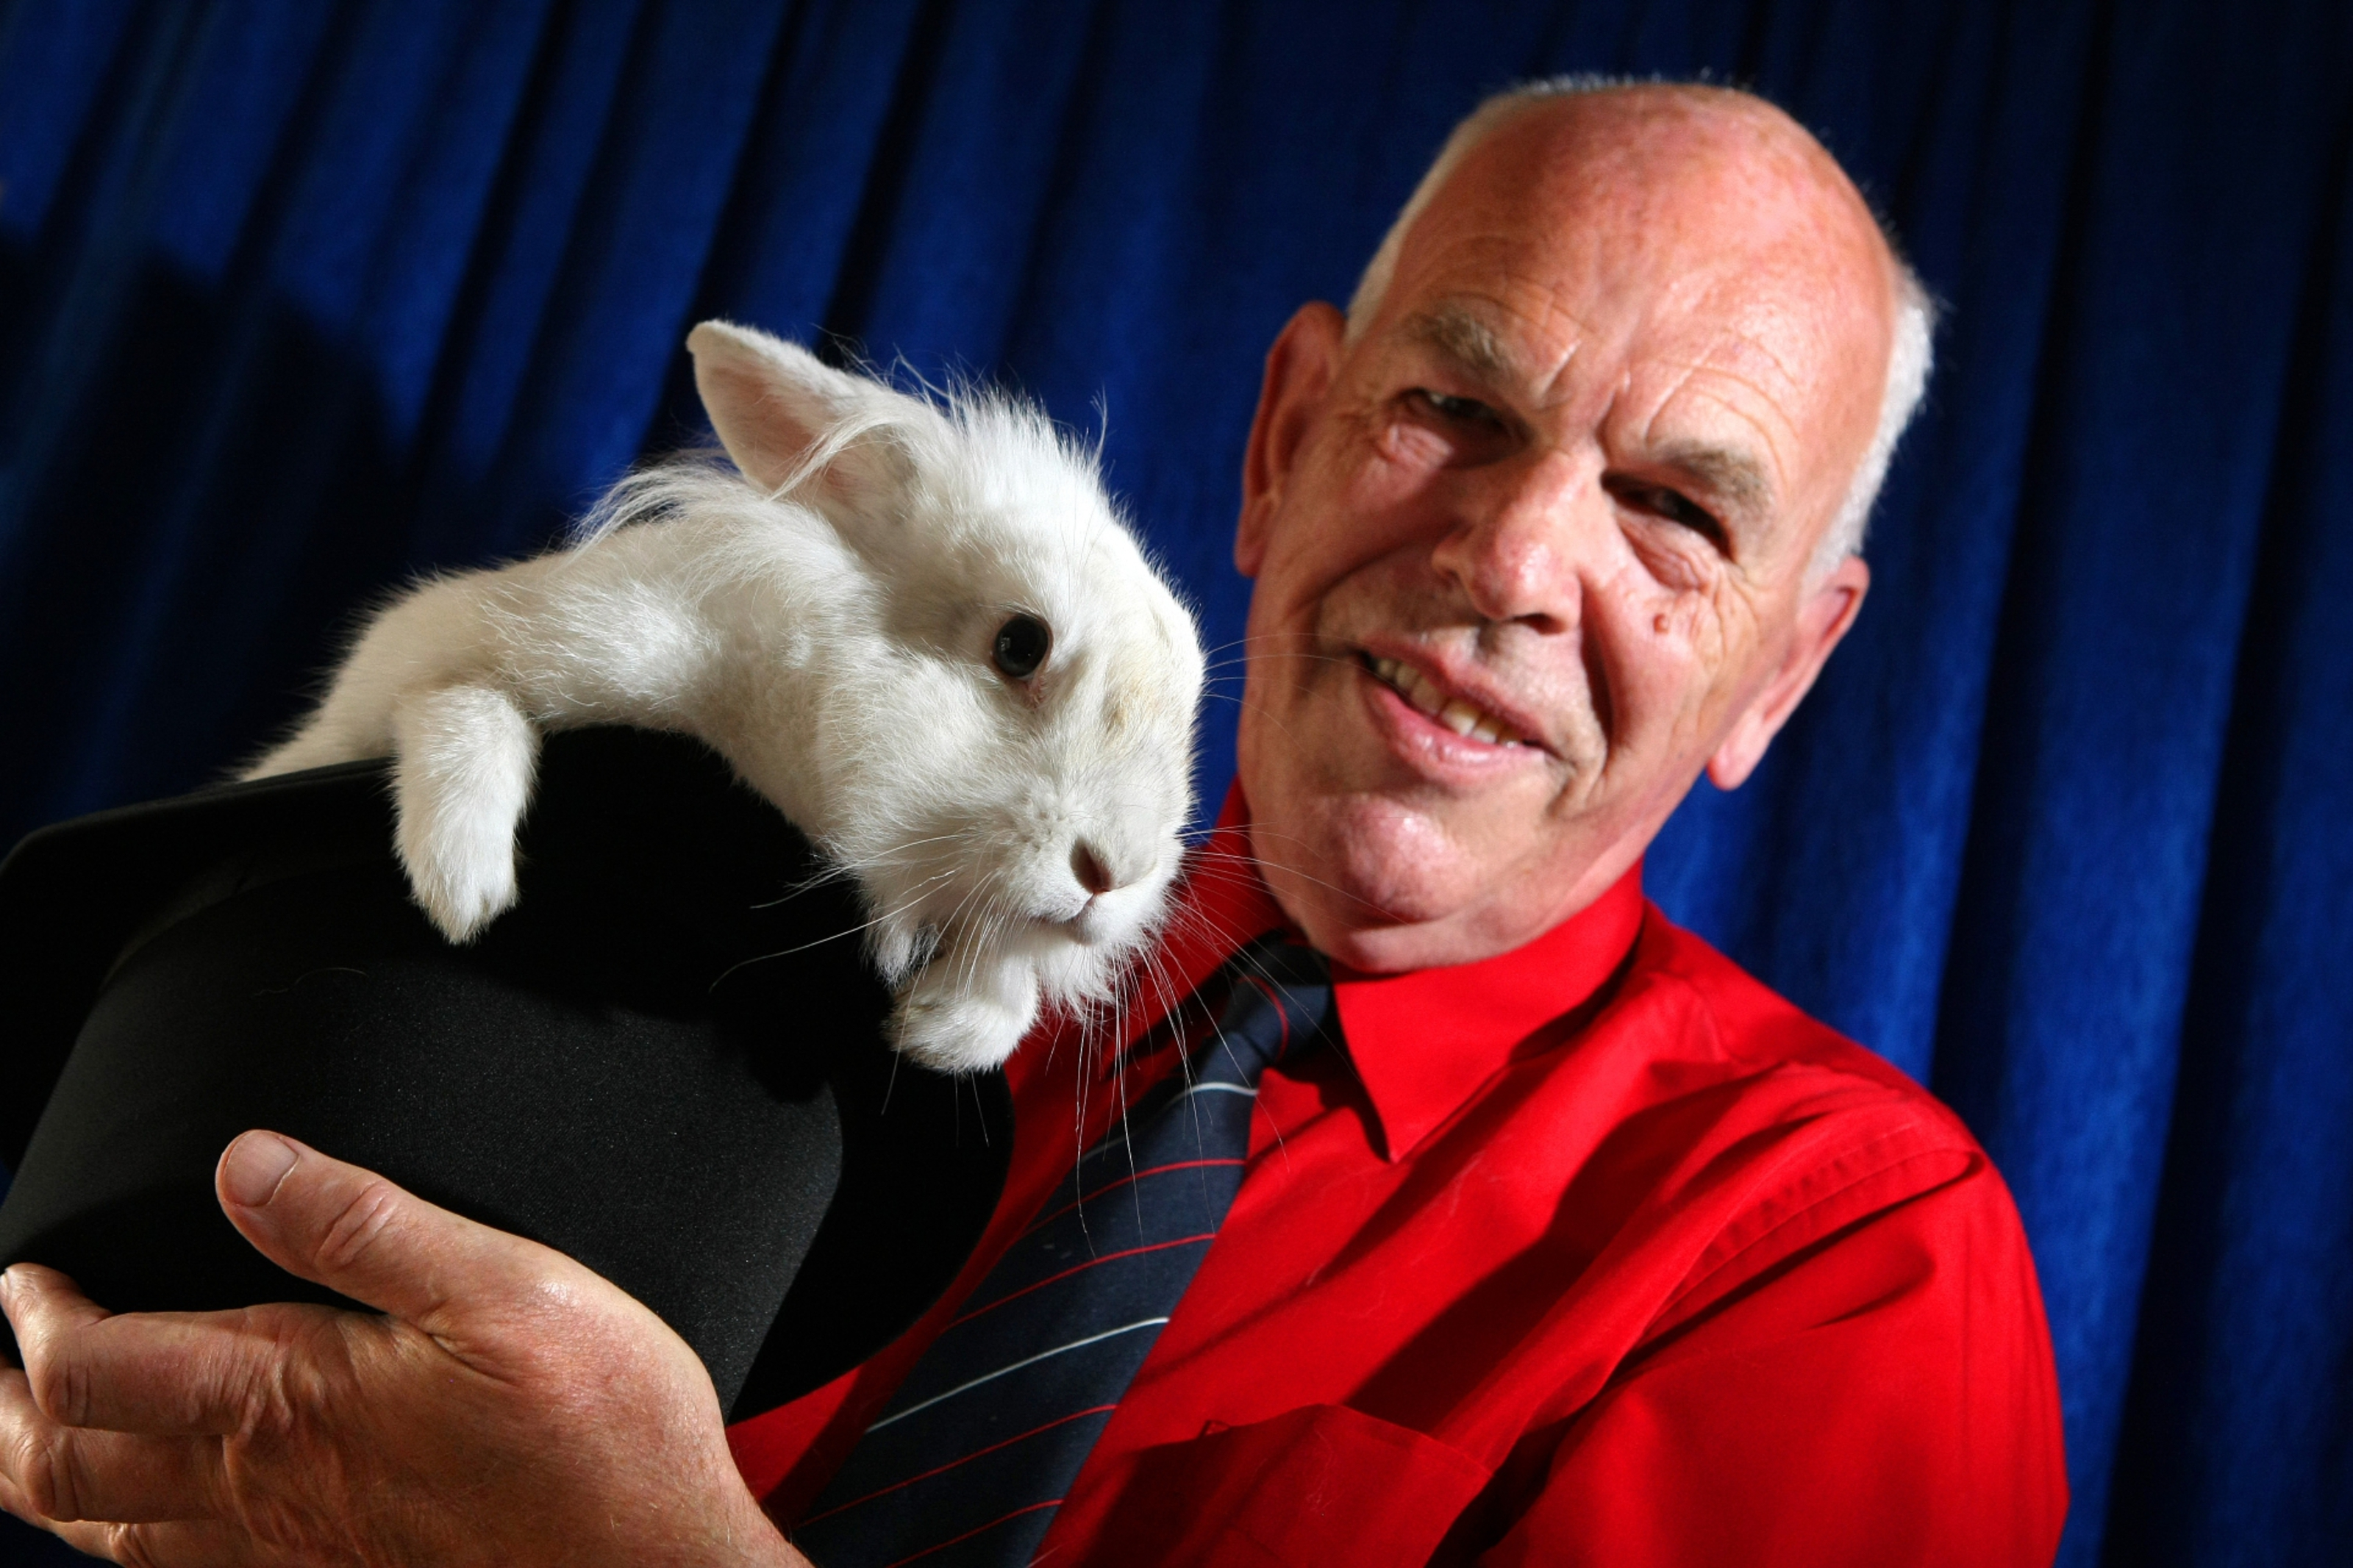 Perth magician Adrian Harris pulls Merlin the rabbit out of a hat.